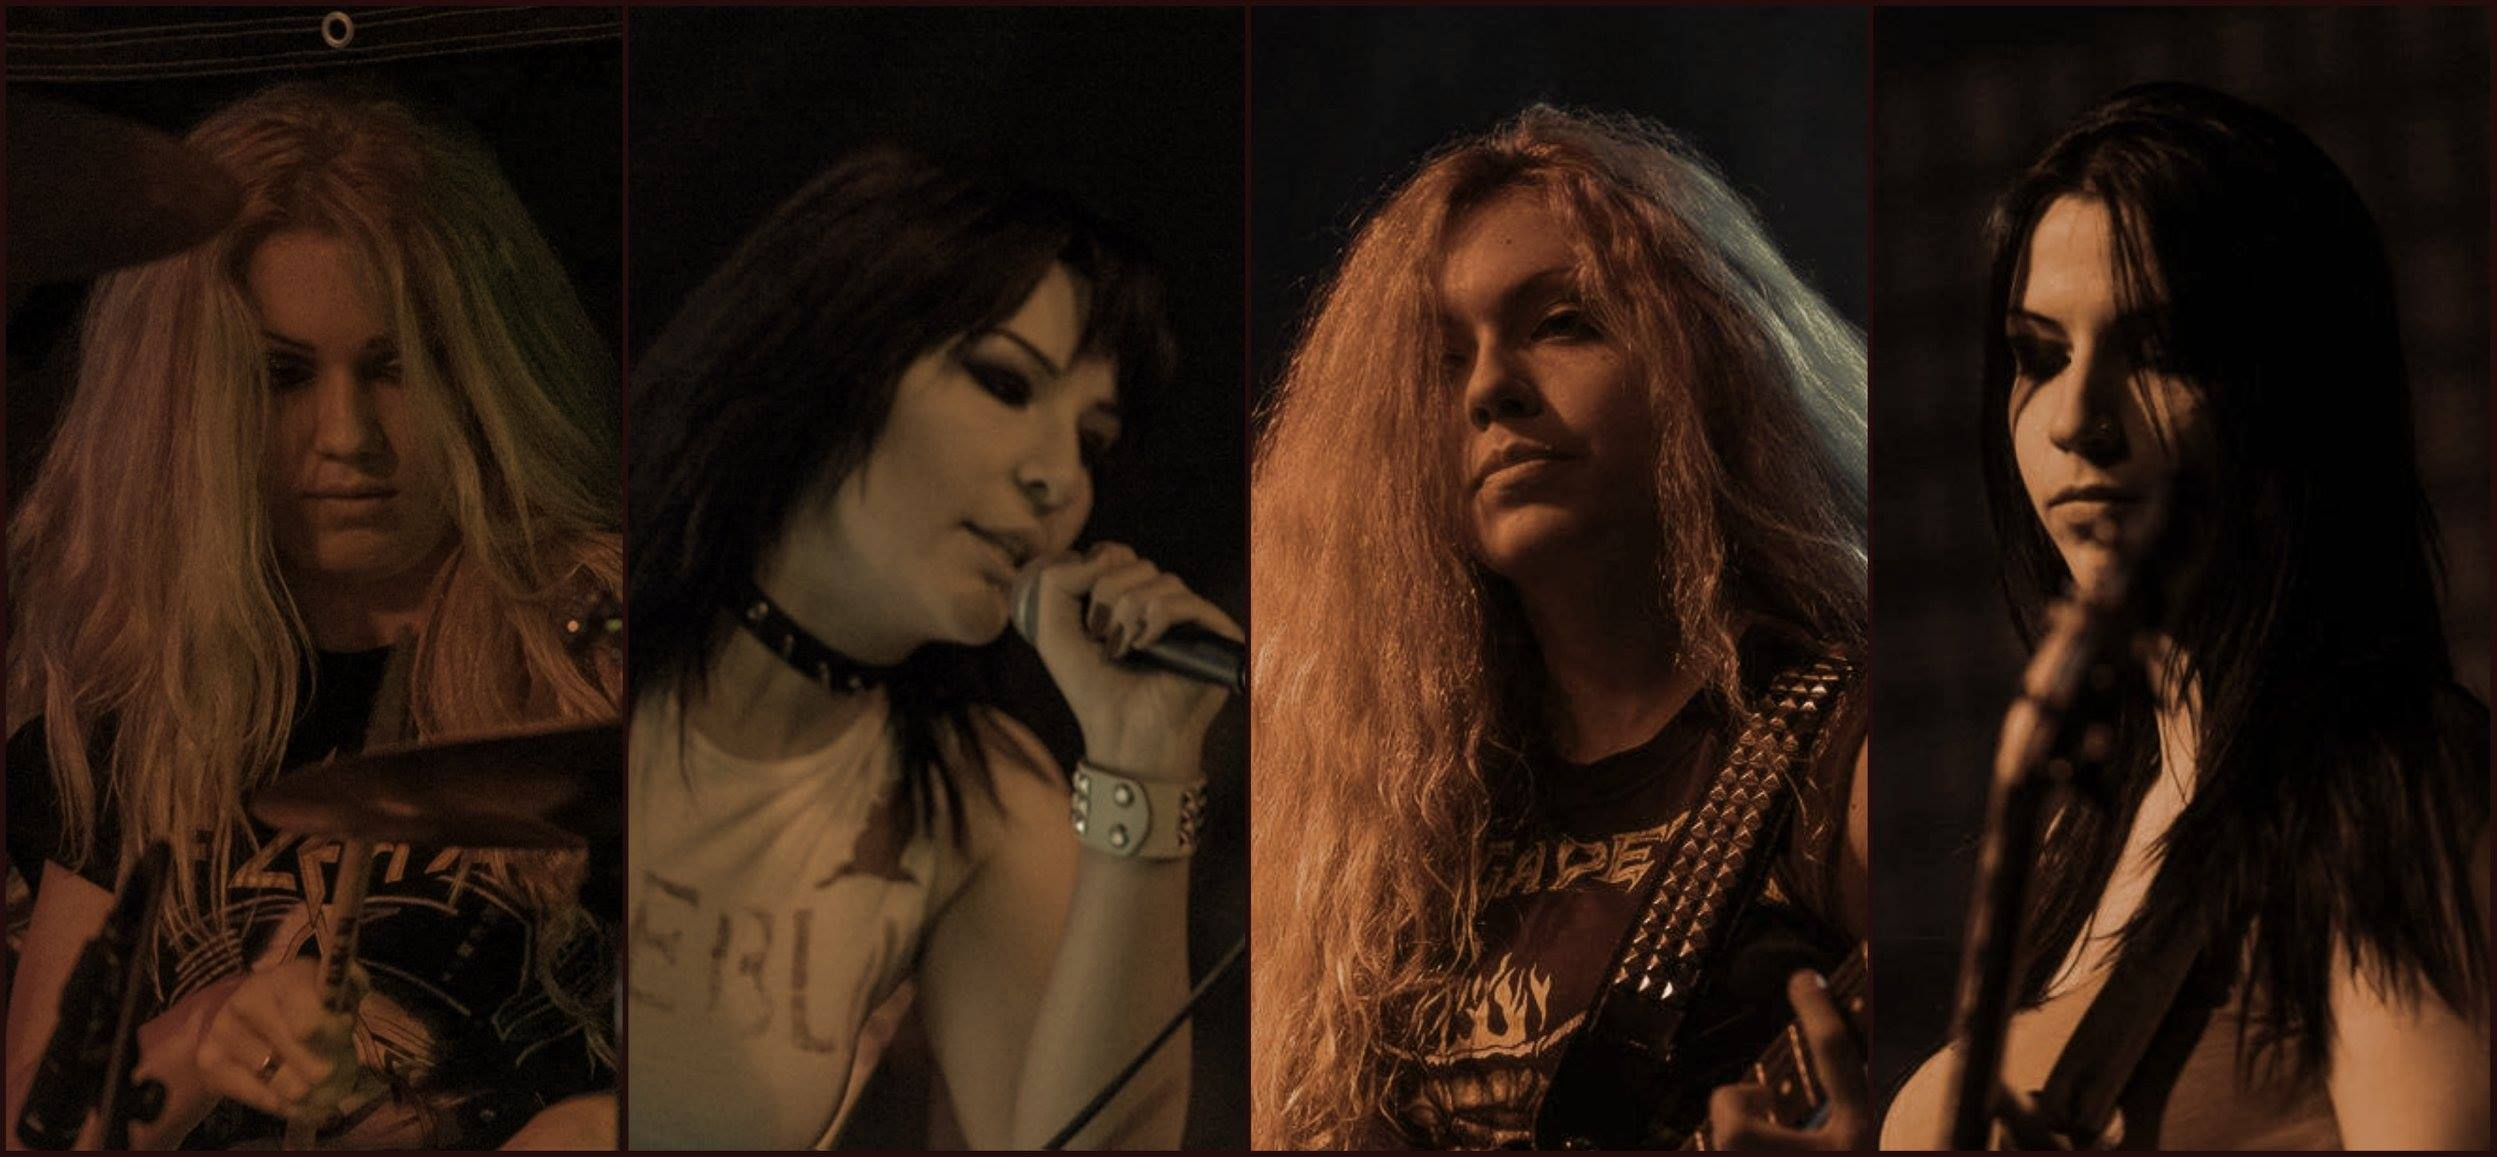 JENNER To Live Is To Suffer (2017) Speed-Metal au féminin SERBIE 15403810